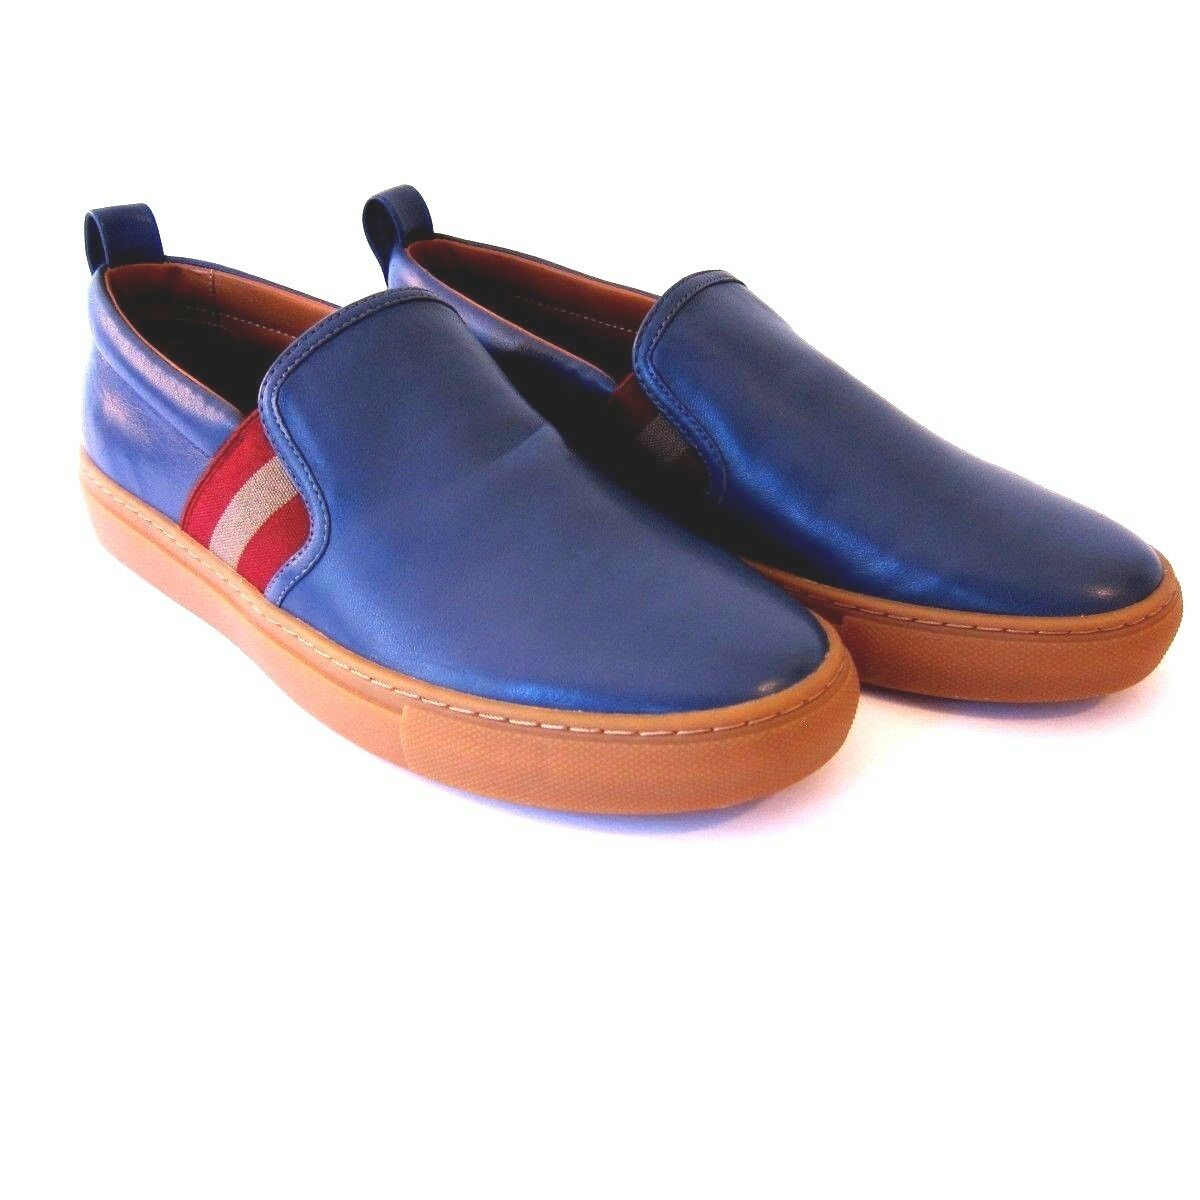 J-1844119 New Bally Herald bluee Jeans Leather Slip On Sneaker shoes Size US 7